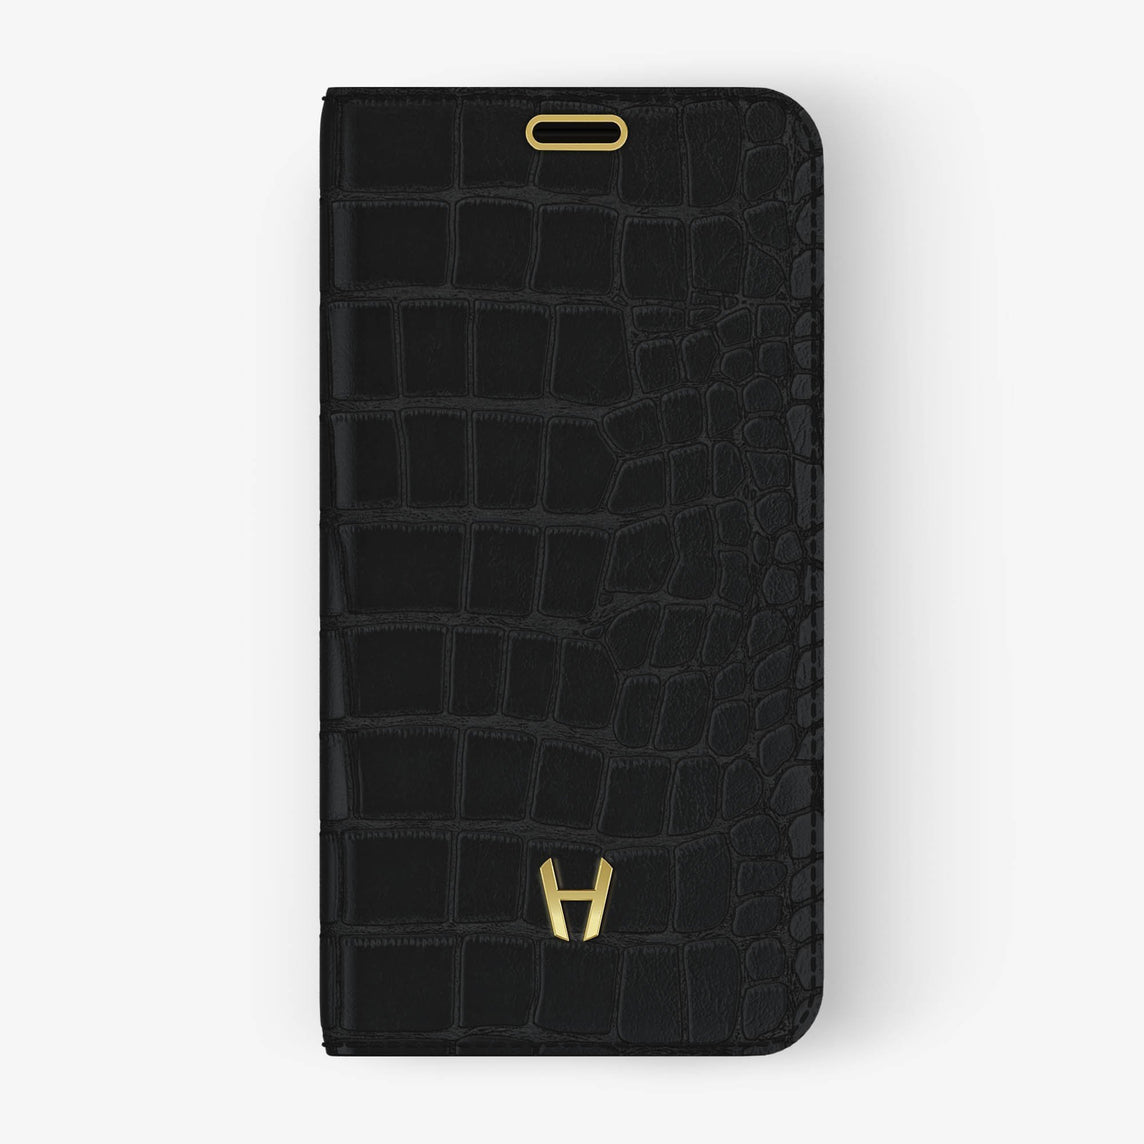 Phantom Black Alligator iPhone Folio Case for iPhone XS Max finishing yellow gold - Hadoro Luxury Cases